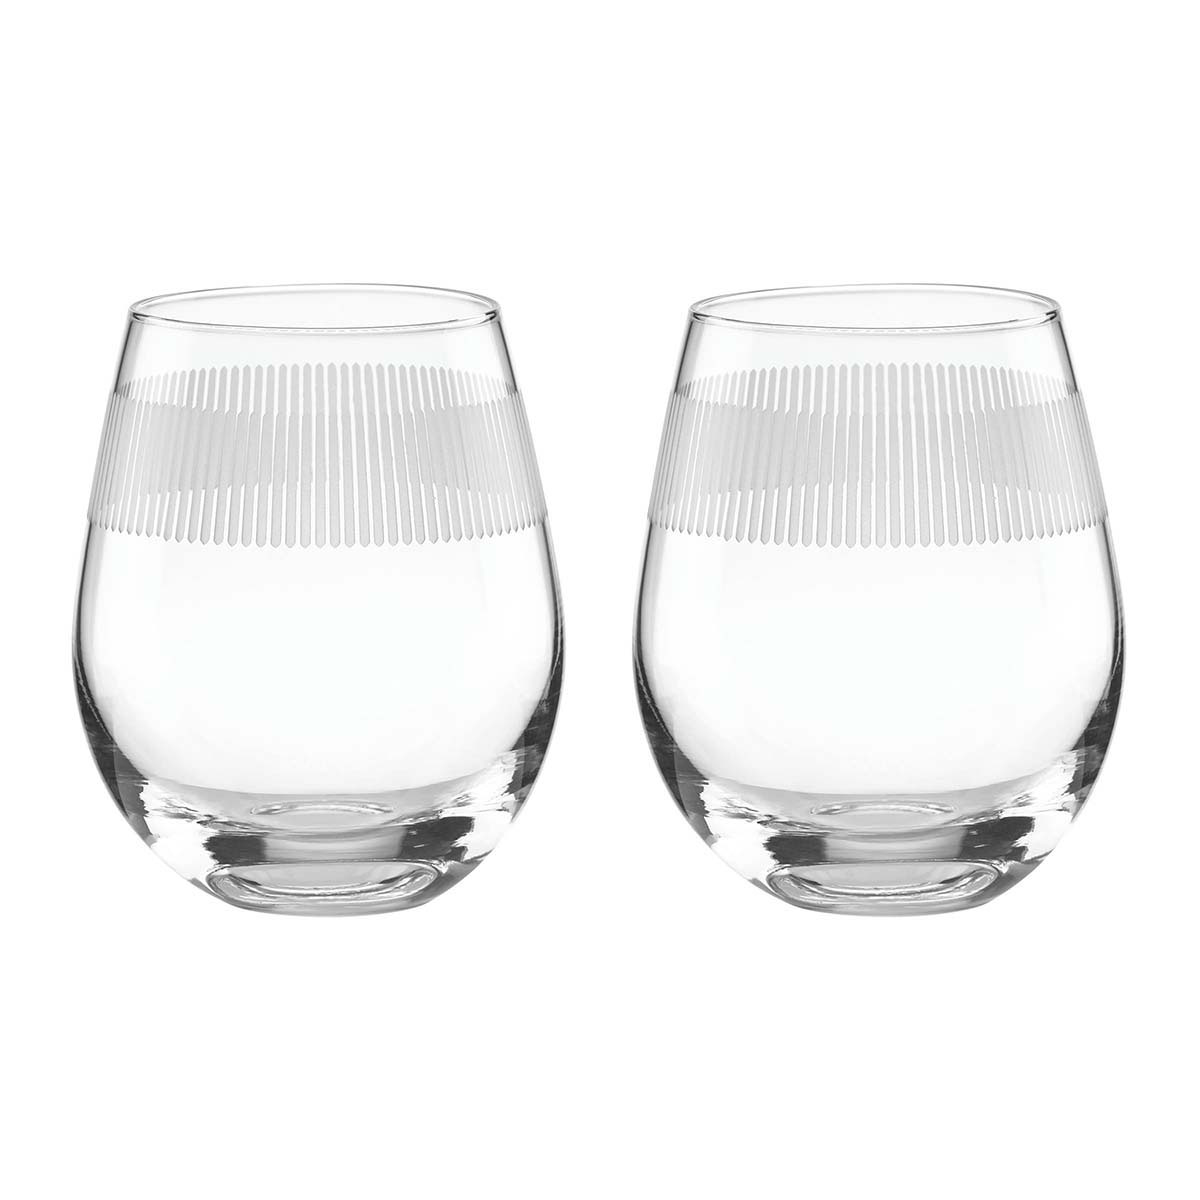 Kate Spade New York, Lenox York Avenue Stemless Crystal Wine, Pair